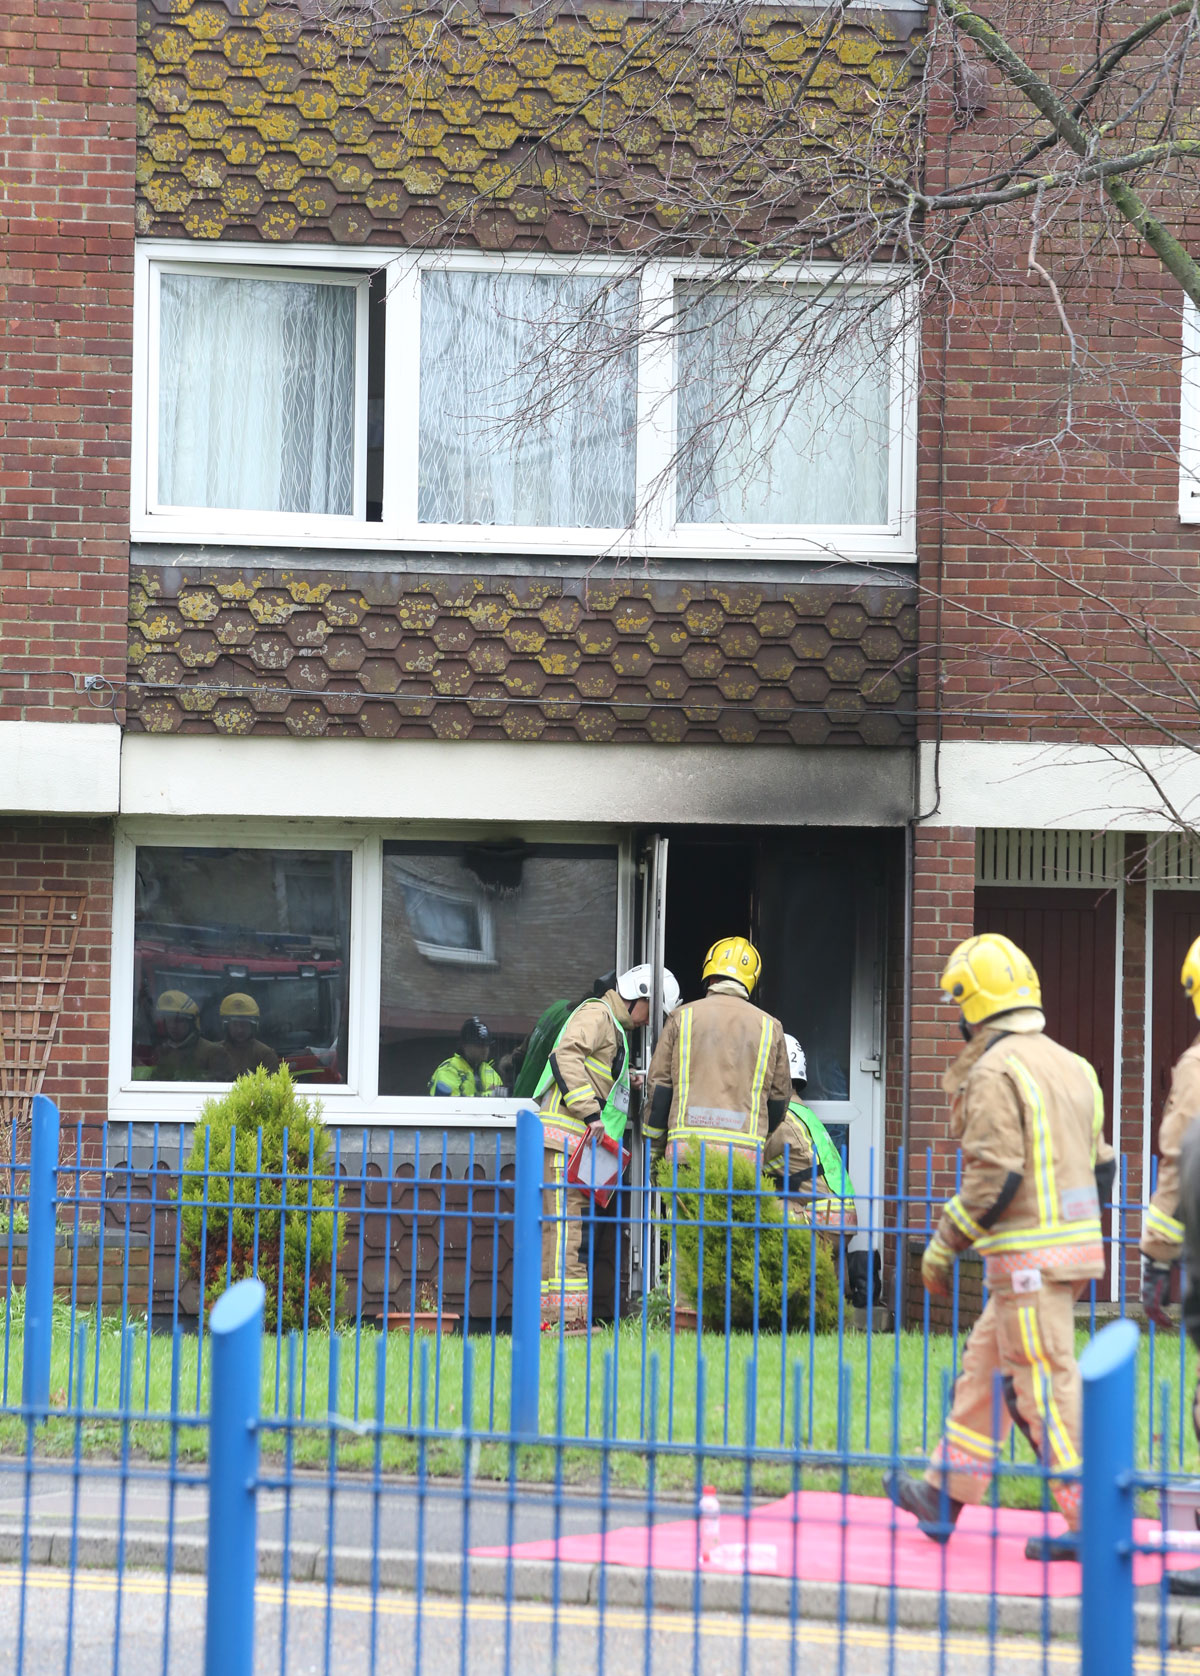 UPDATE WITH VIDEO: Firefighters tackle blaze at flats in Poole